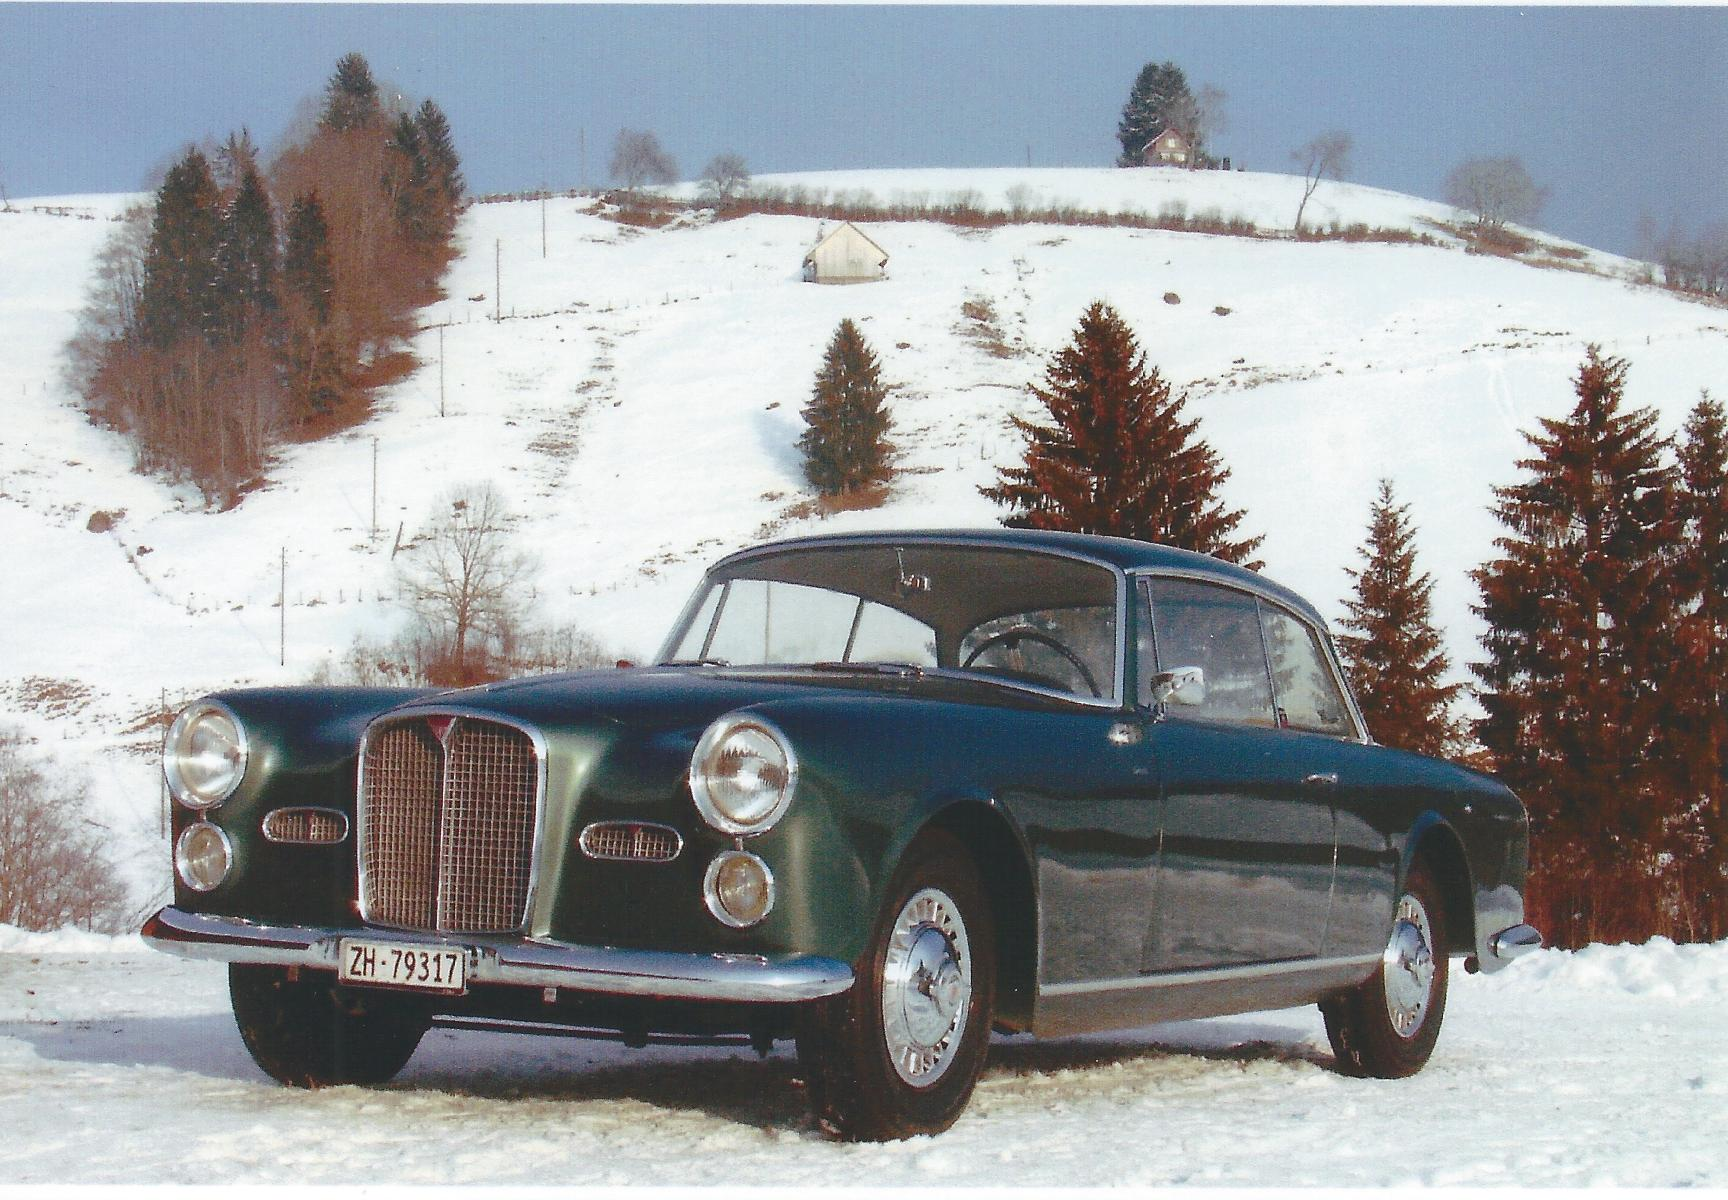 26777 Graber TD21 Series II coupe, formerly owned and restored by Werner Graf